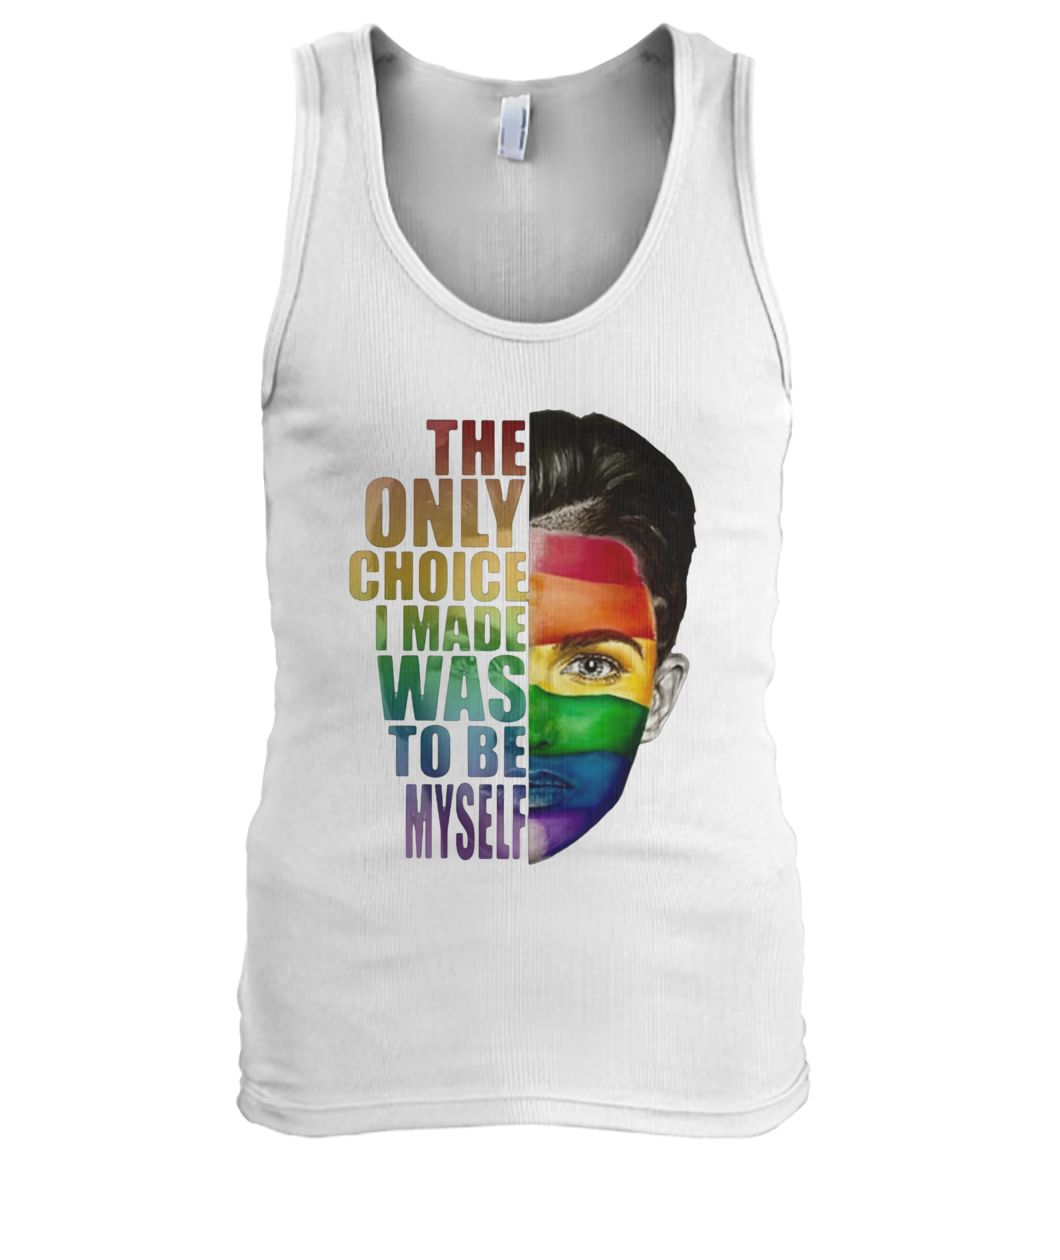 Ruby rose the only choice i made was to be myself LGBT men's tank top